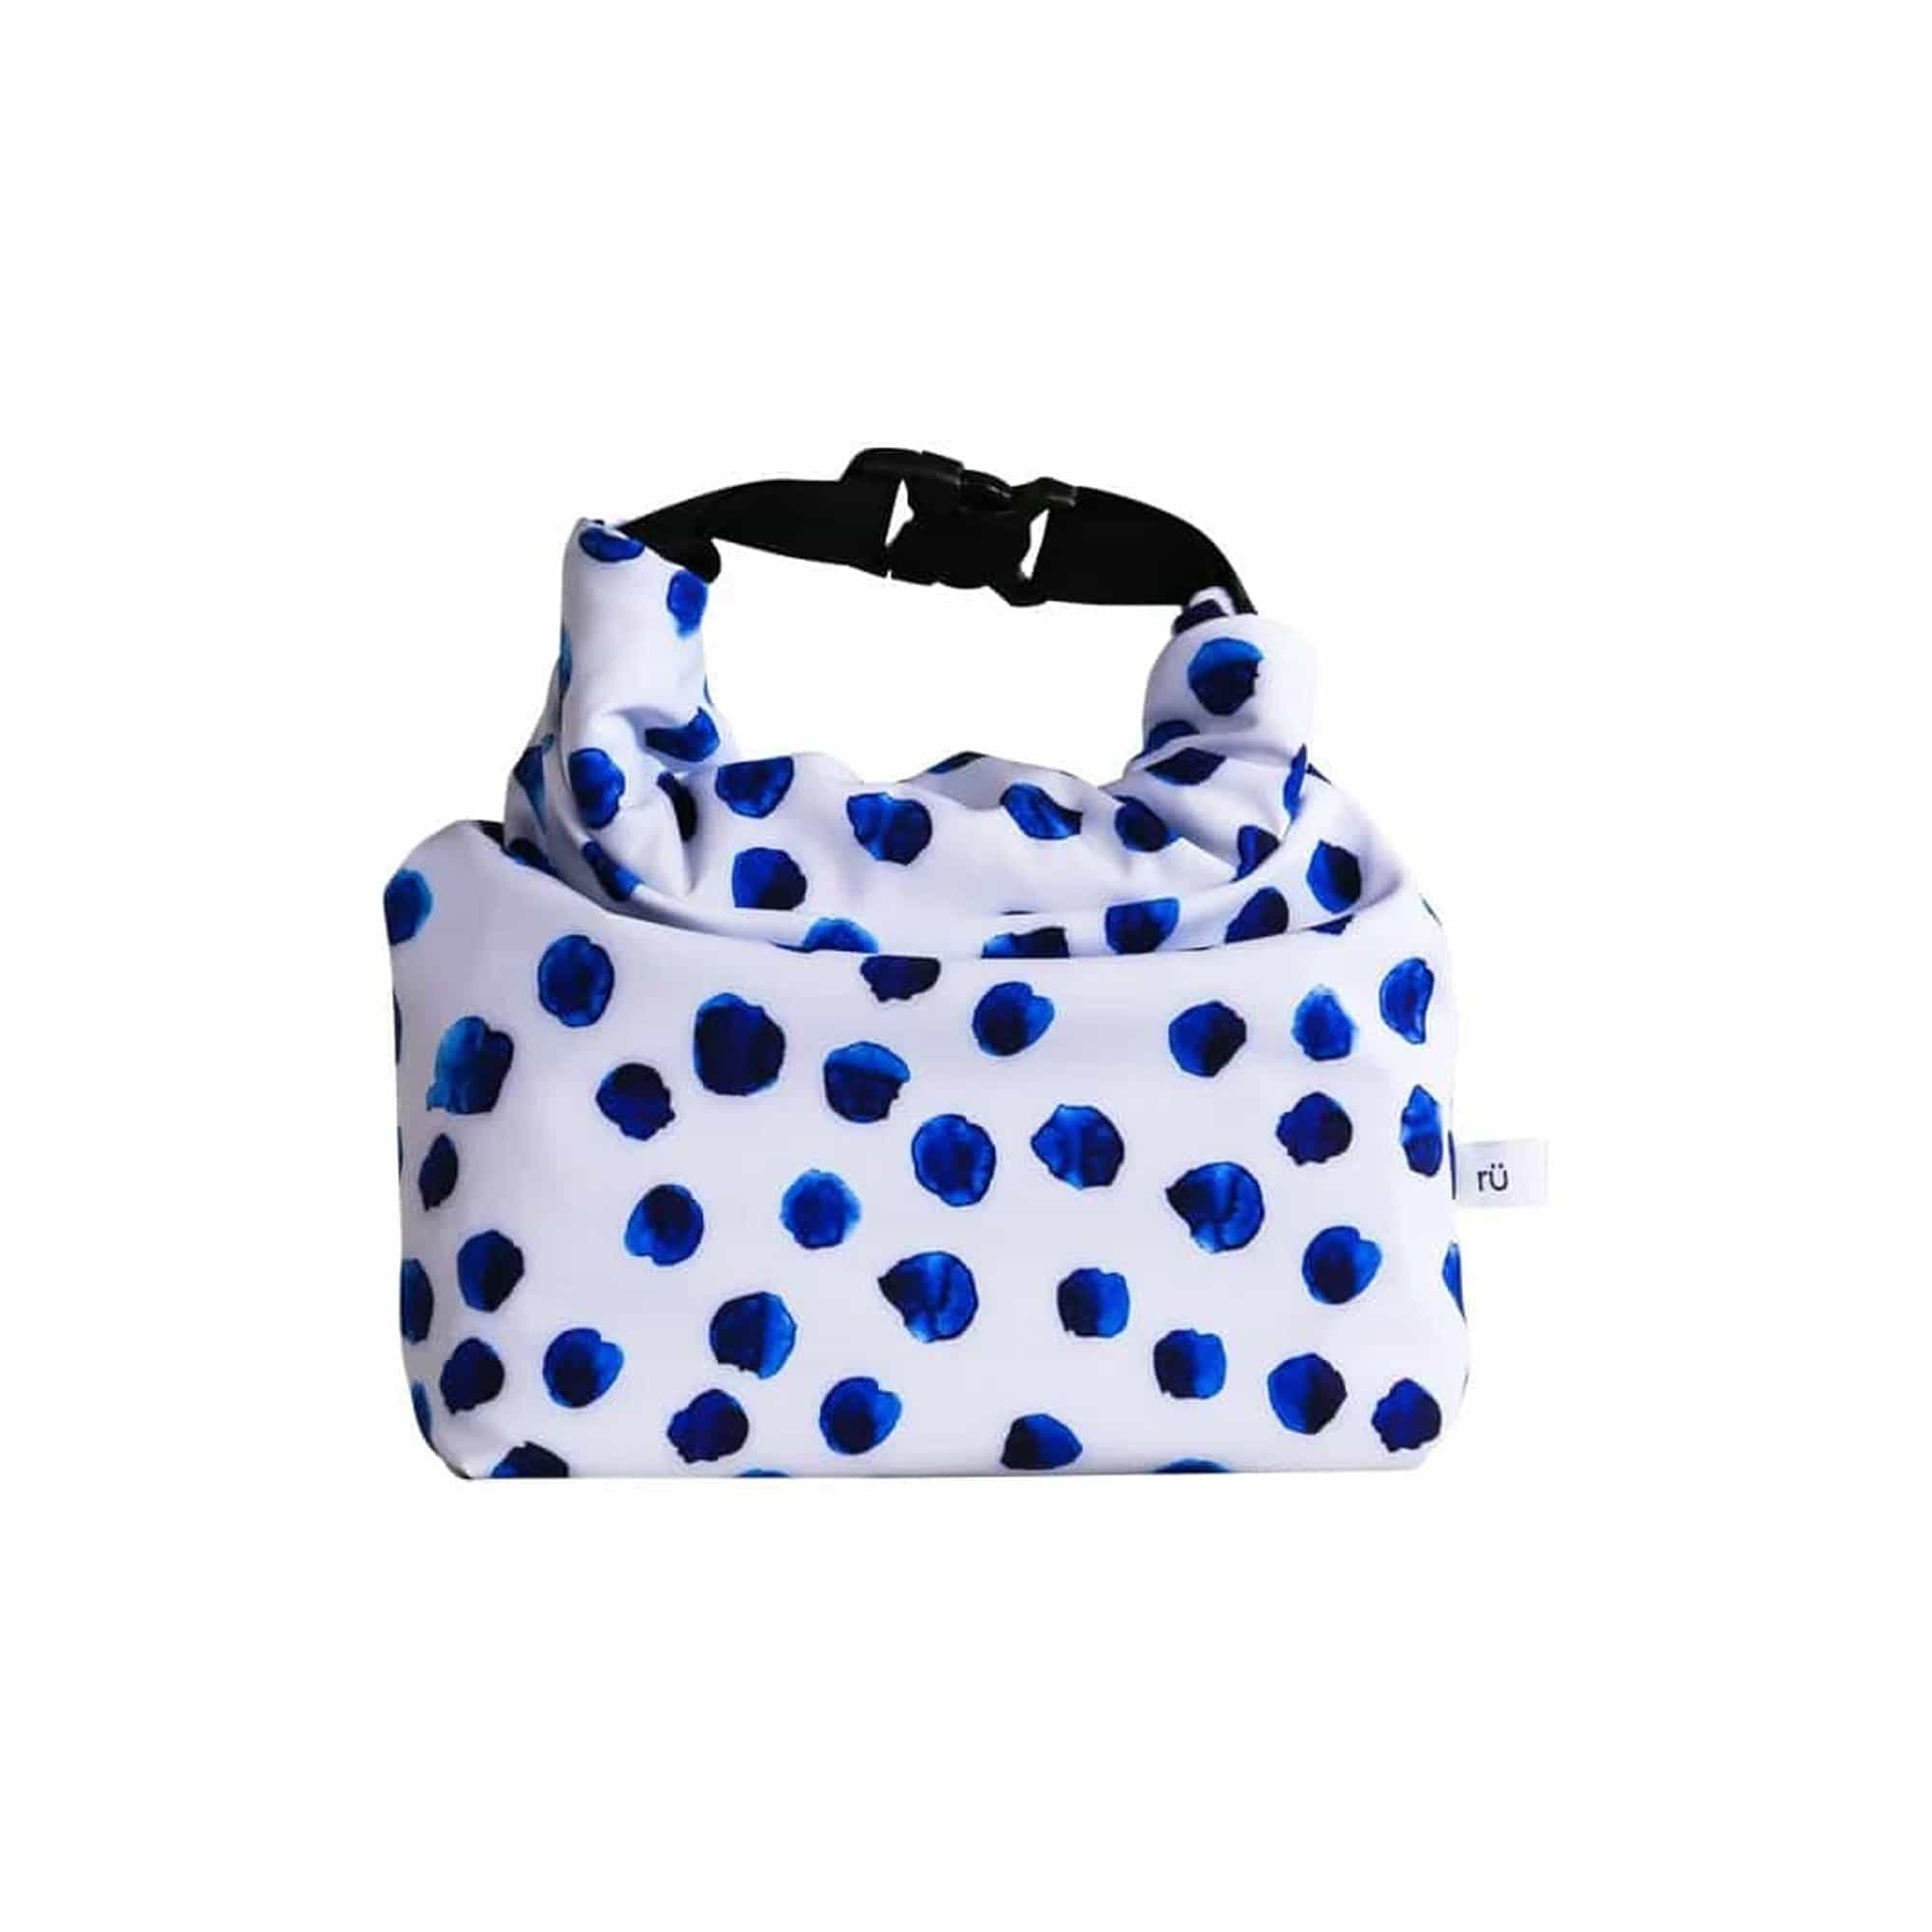 rü supply co. Wine + Food Carriers pölka dot Lunch Bag